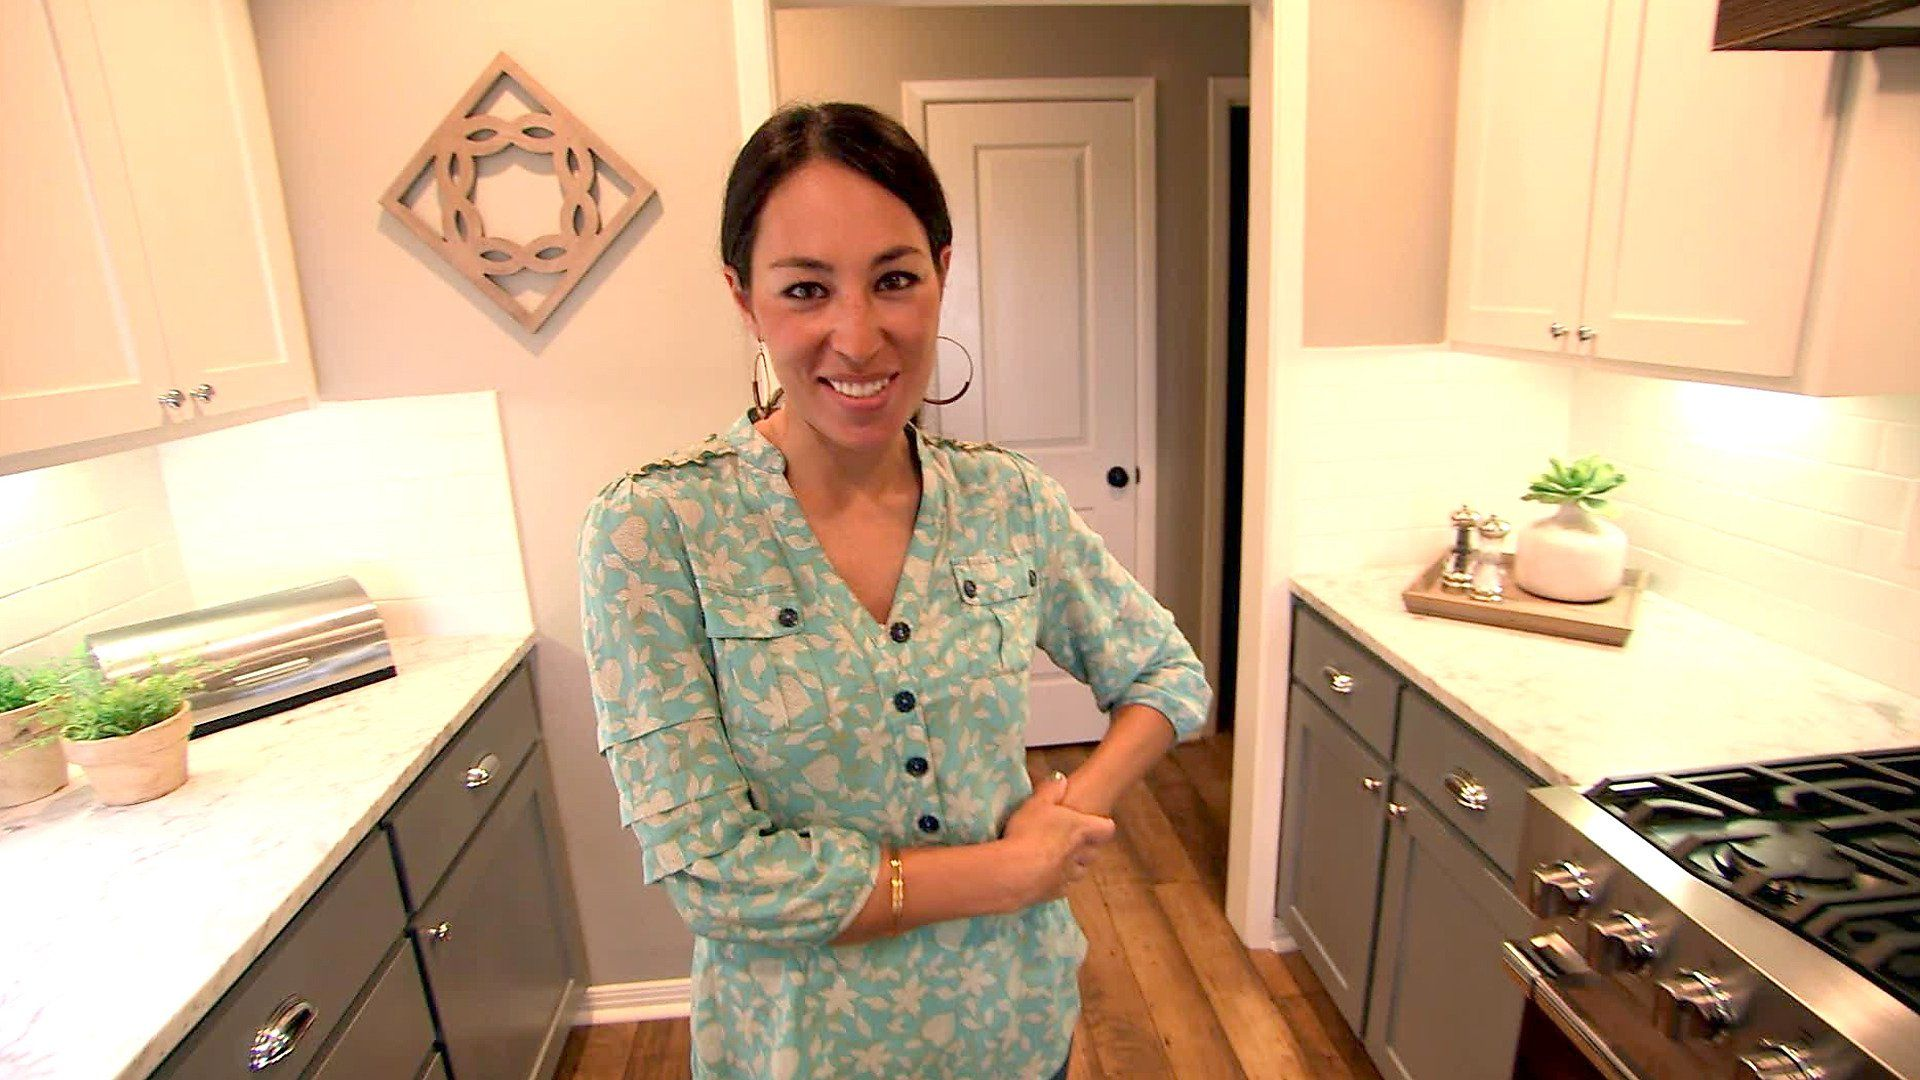 Joanna Gaines Teaches Us How To Make A Small Room Look Bigger Fixer Upper Joanna Gaines Kitchen Design Small Space Chip And Joanna Gaines